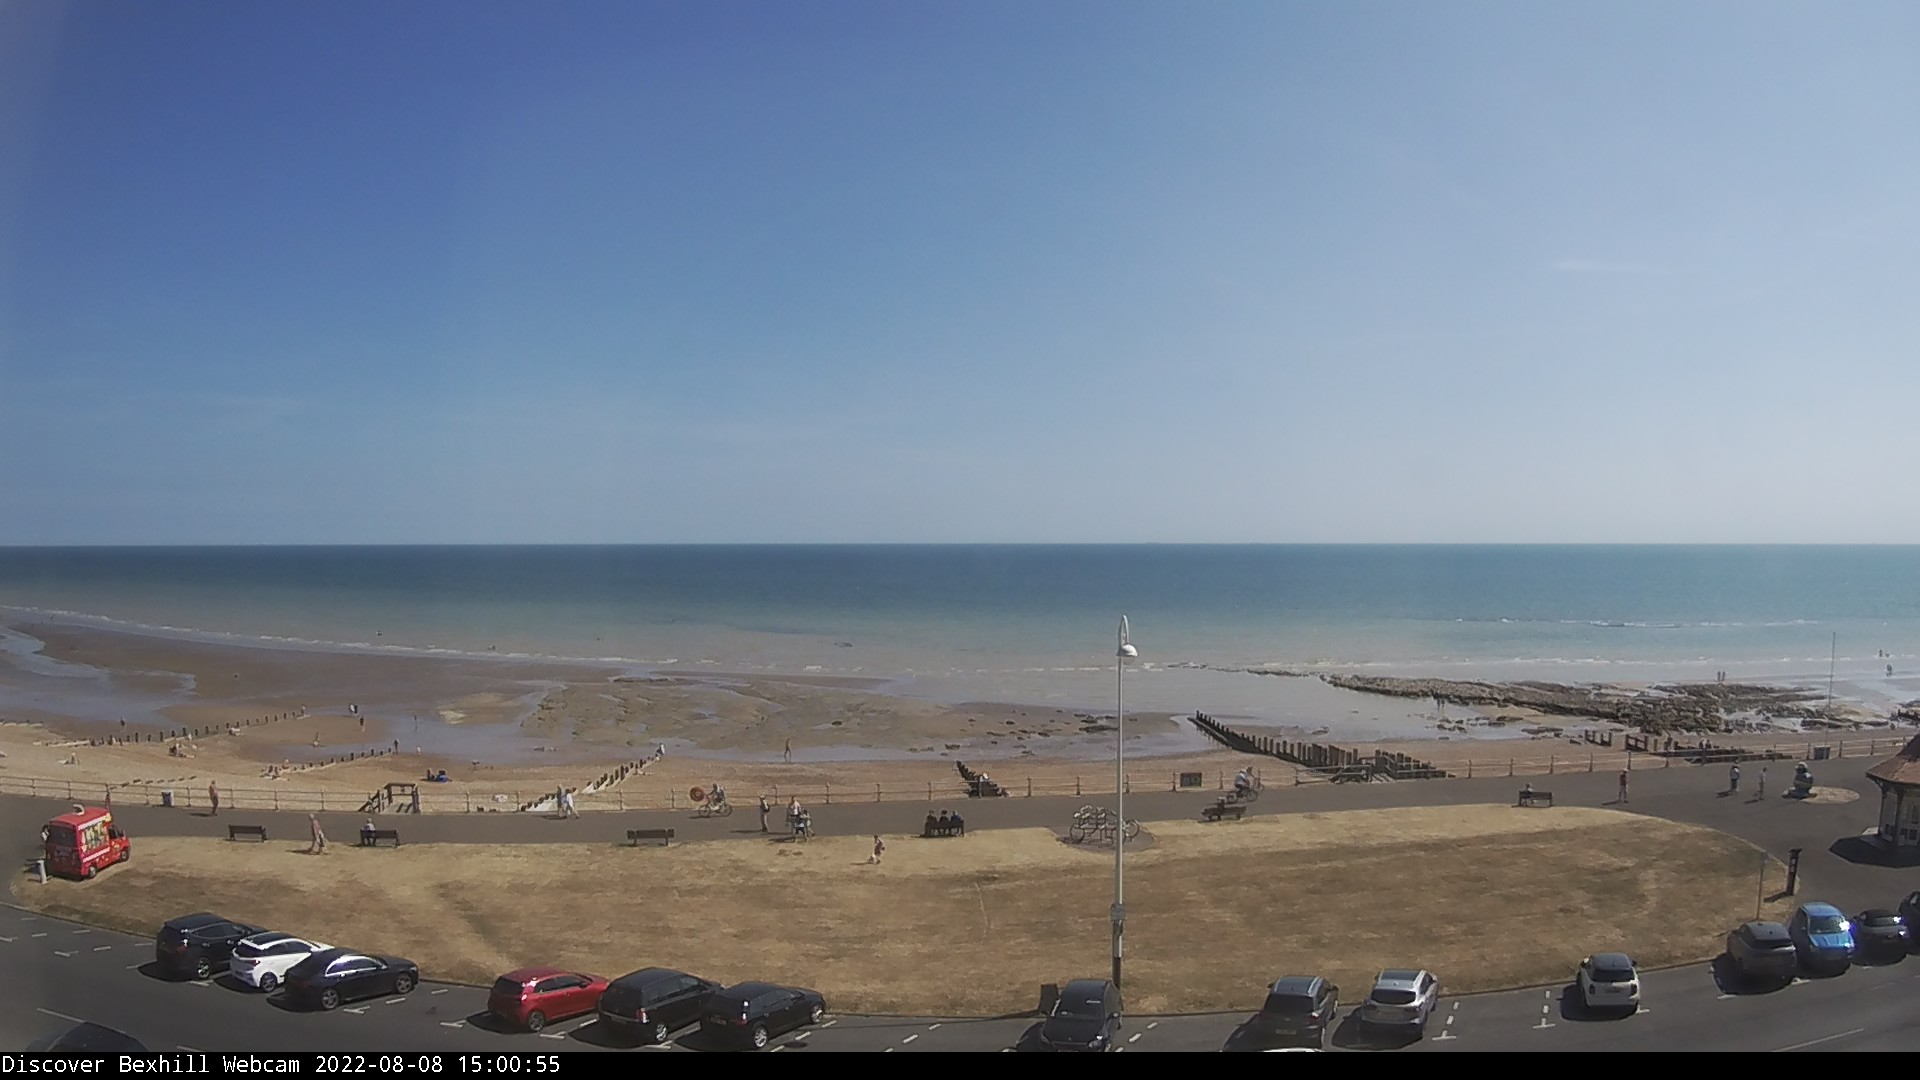 Latest Bexhill webcam photograph